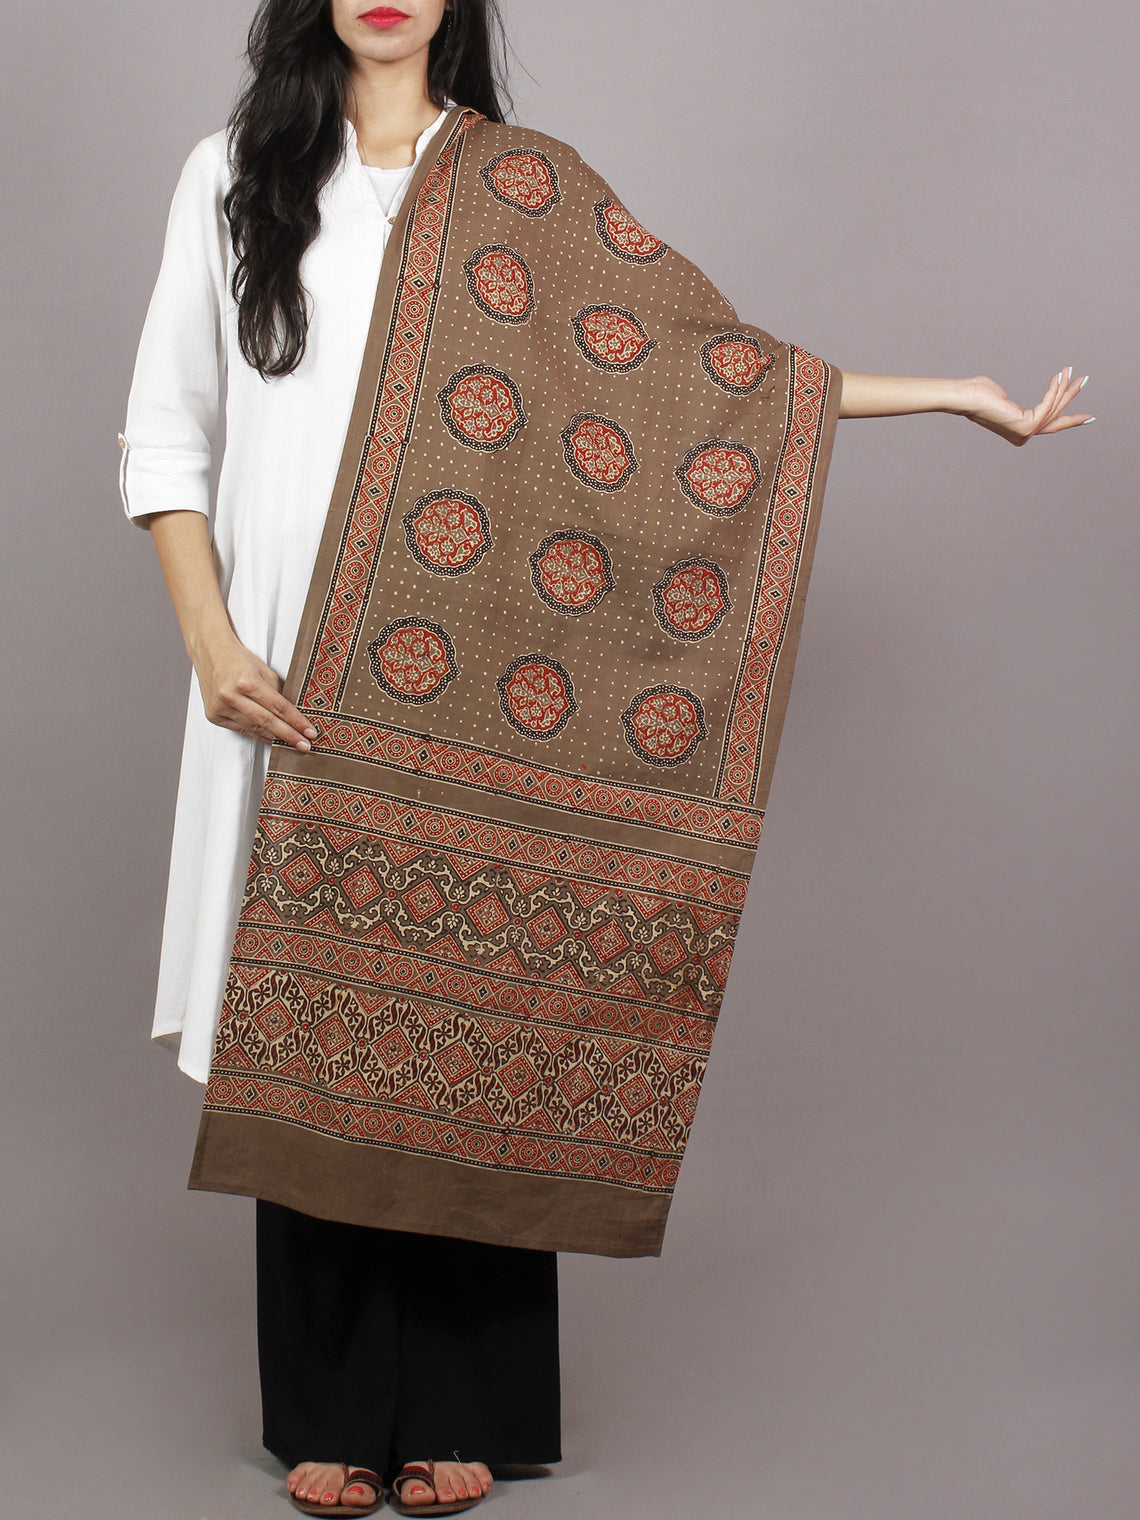 Brown Beige Maroon Black Mughal Nakashi Ajrakh Hand Block Printed Cotton Stole - S63170140